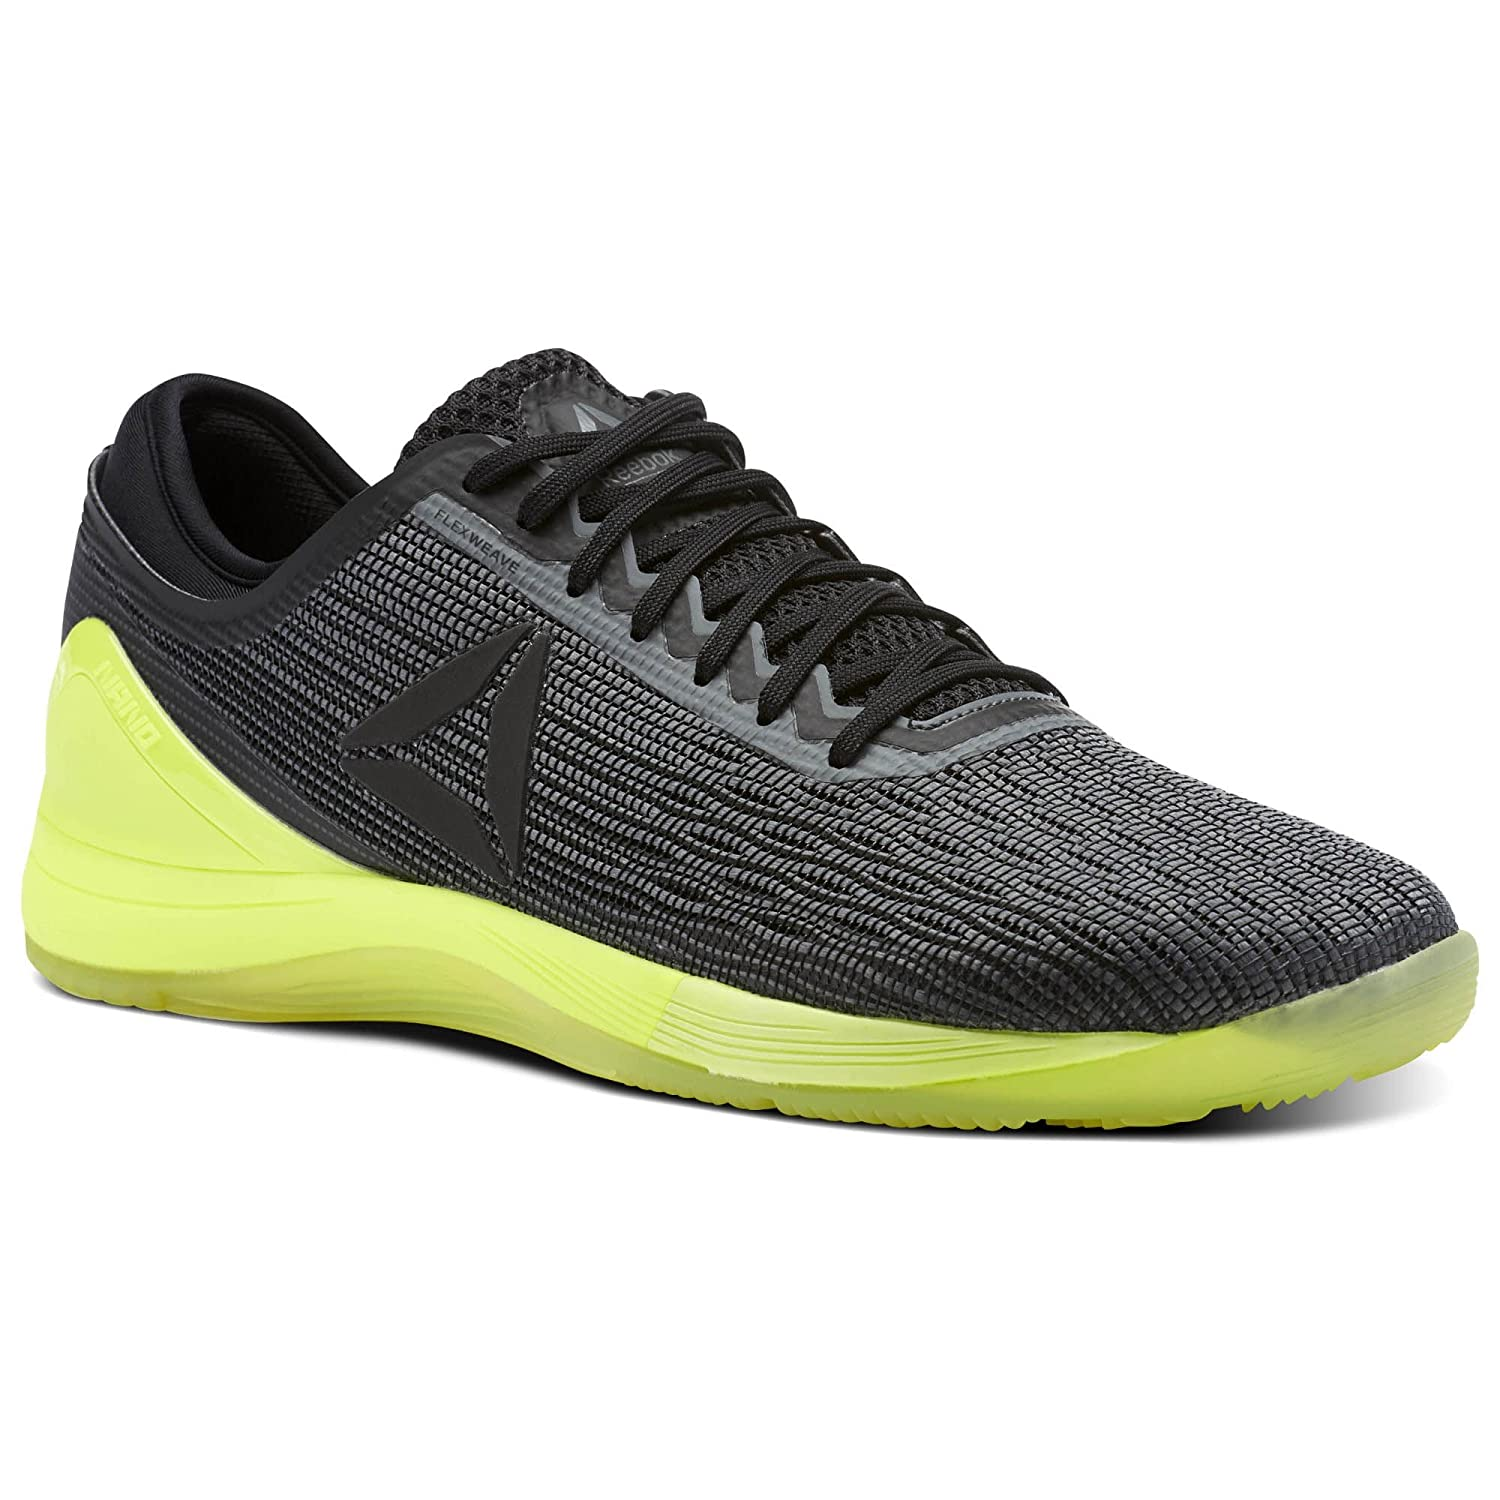 Reebok Men's Crossfit Nano 8.0 Flexweave B077V4BFQH 10.5 D(M) US|Alloy/Black/Solar Yellow